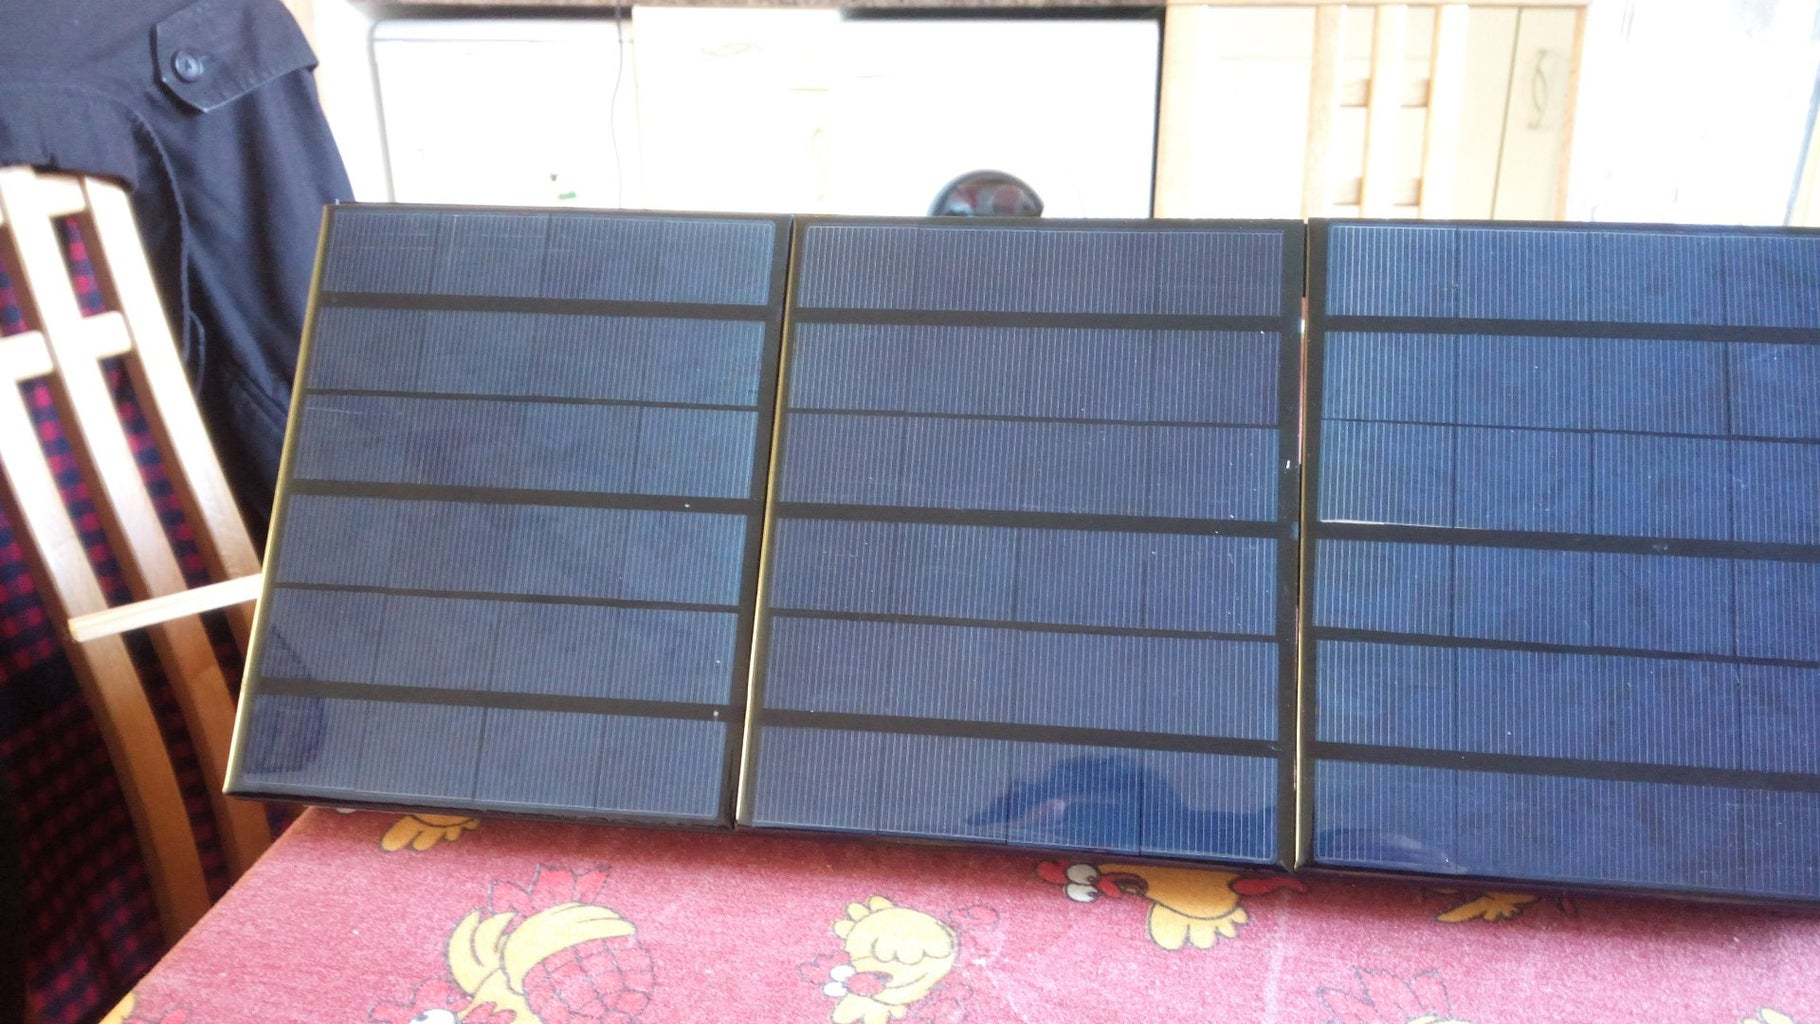 Building Up the Solar Panel